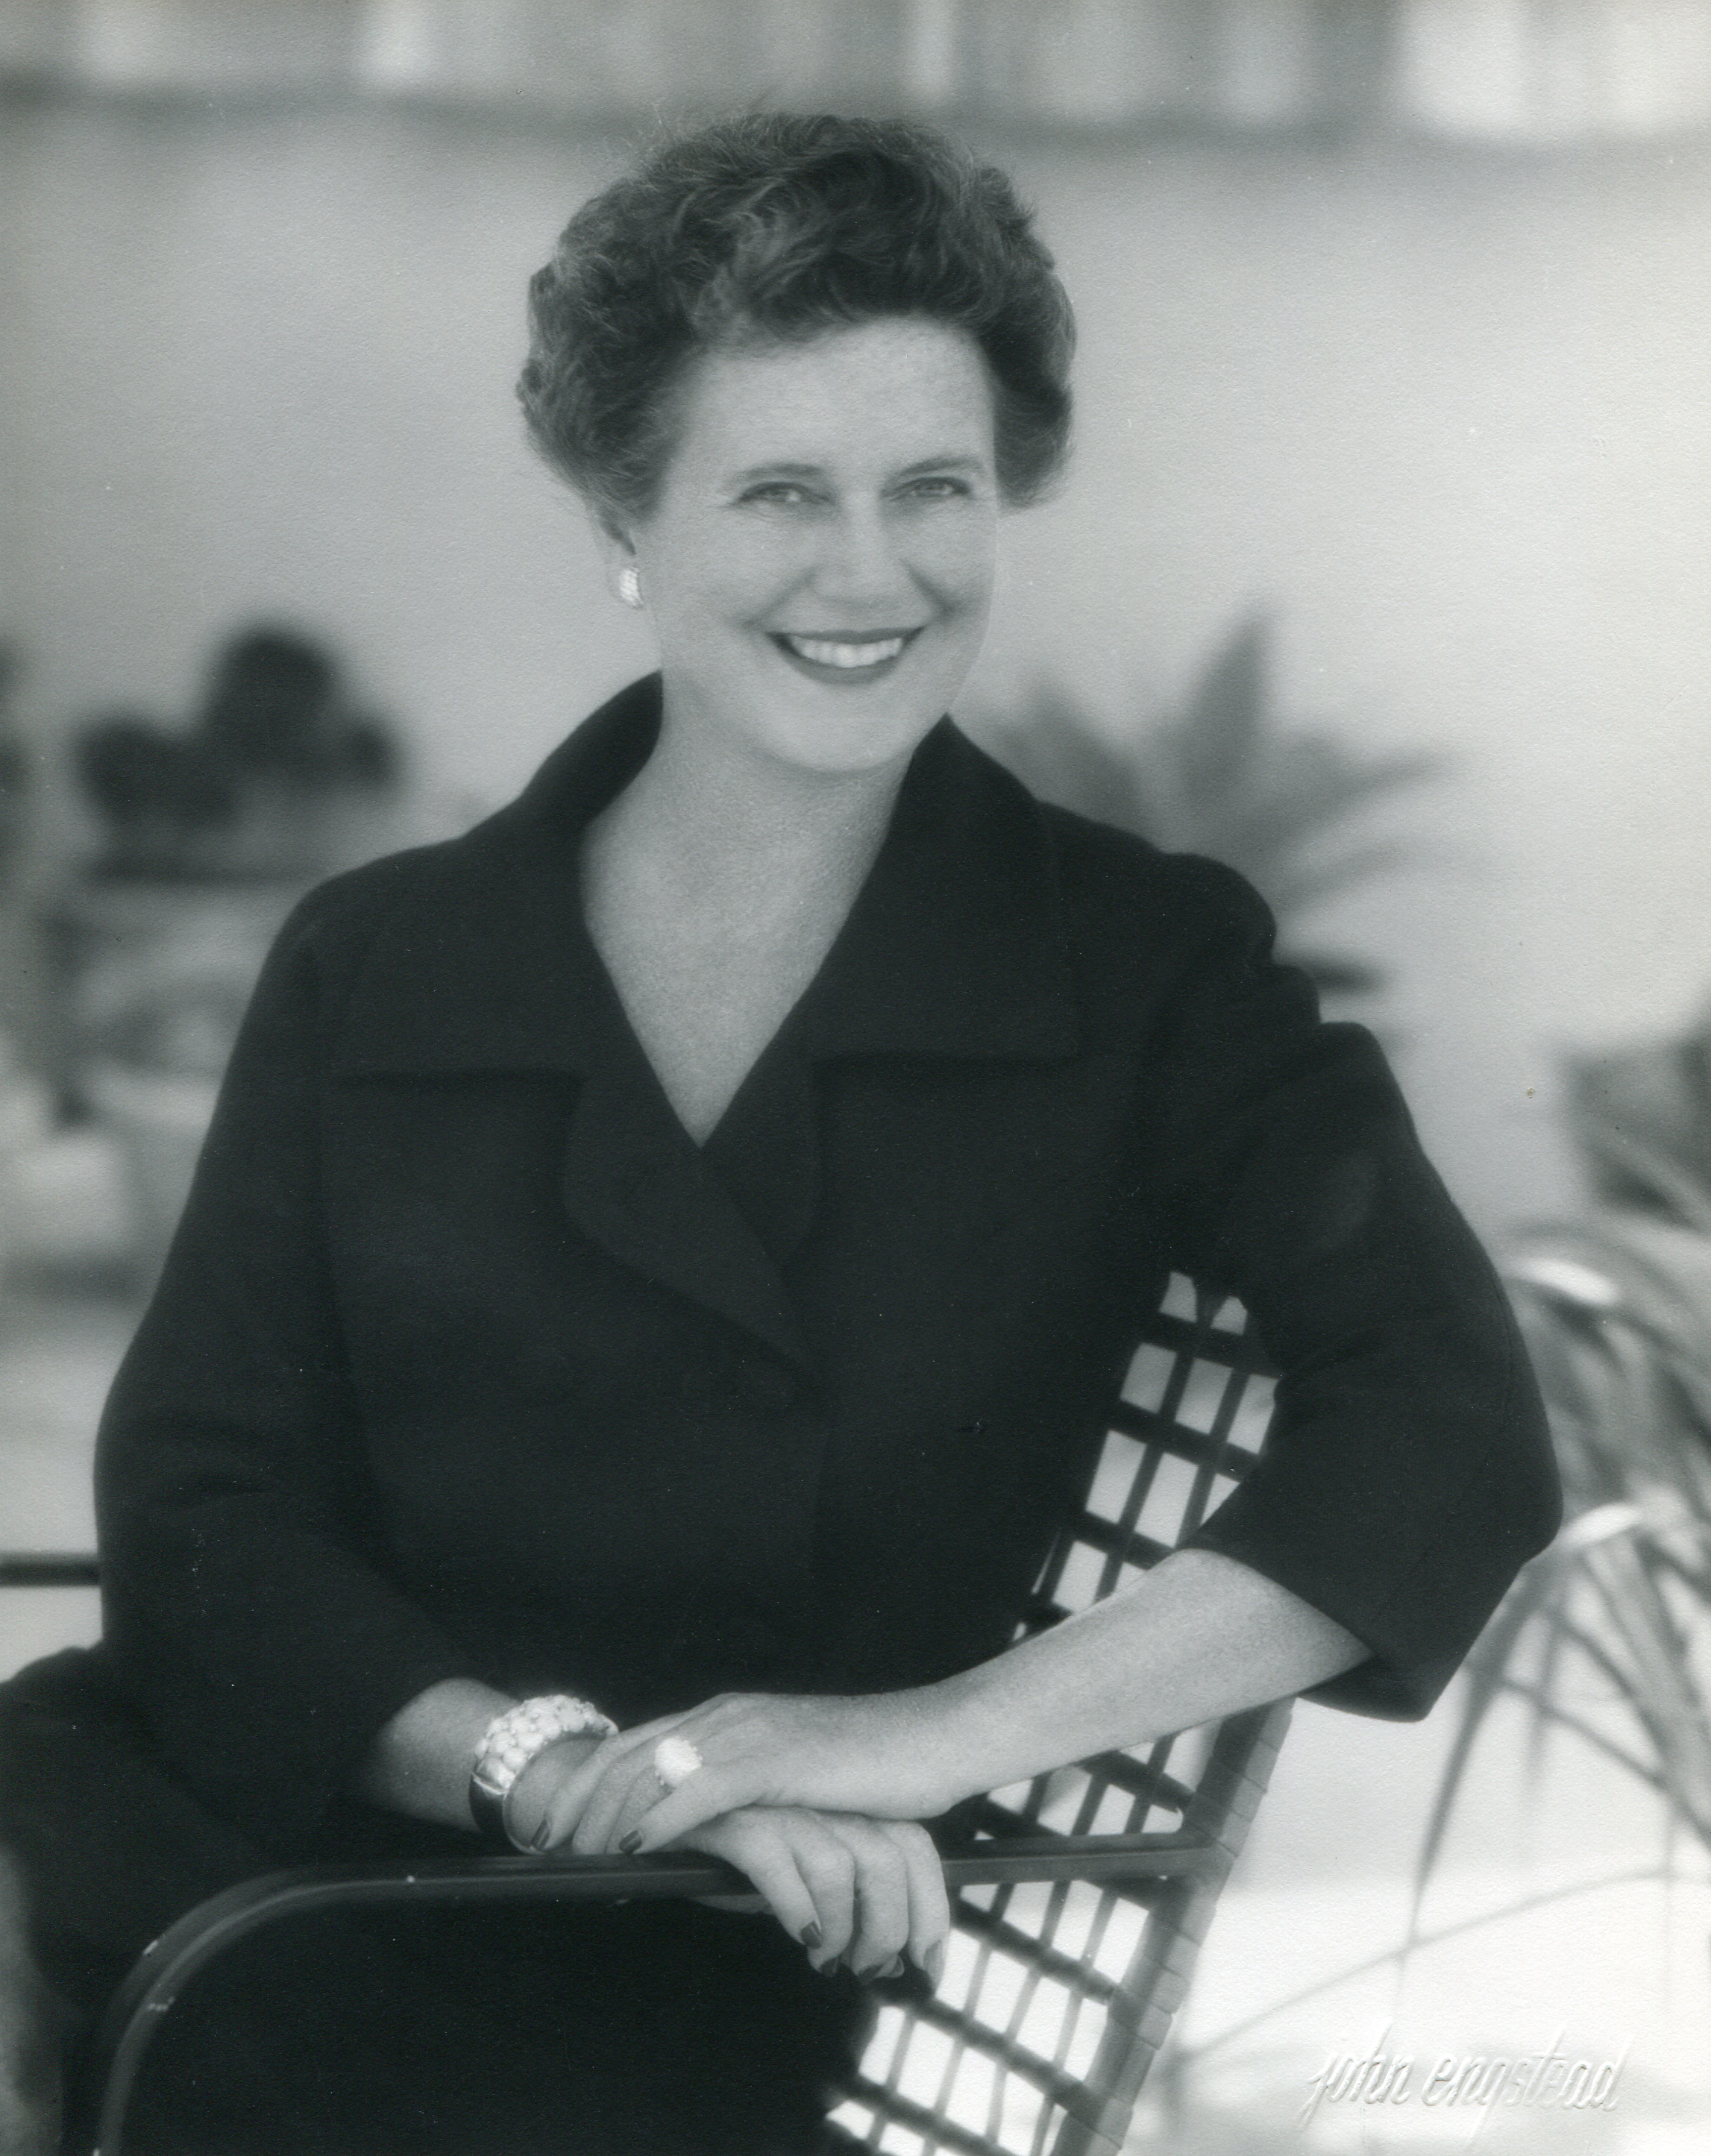 A black and white portrait of Dorothy Chandler seated outdoors, smiling at the camera.